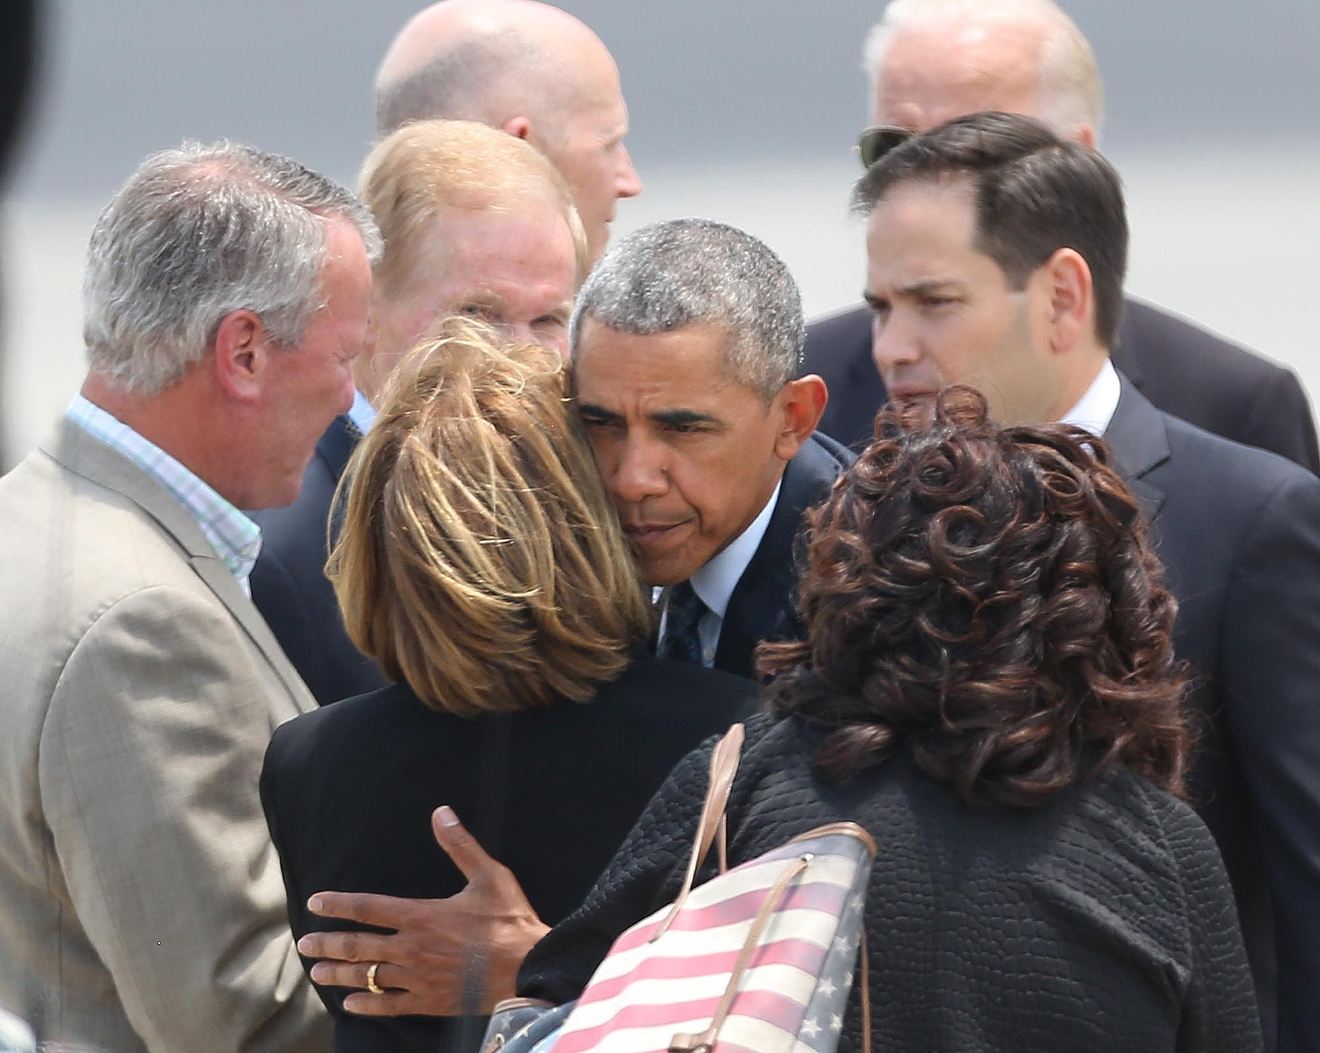 President Barack Obama hugs Orange County Mayor Teresa Jacobs upon the president's arrival at Orlando International Airport, Thursday, June 16, 2016, in Orlando, Fla. Obama is in Orlando today to pay respects to the victims of the Pulse nightclub shooting and meet with families of victims of the attack. (Stephen M. Dowell/Orlando Sentinel via AP) MAGS OUT; NO SALES; MANDATORY CREDIT